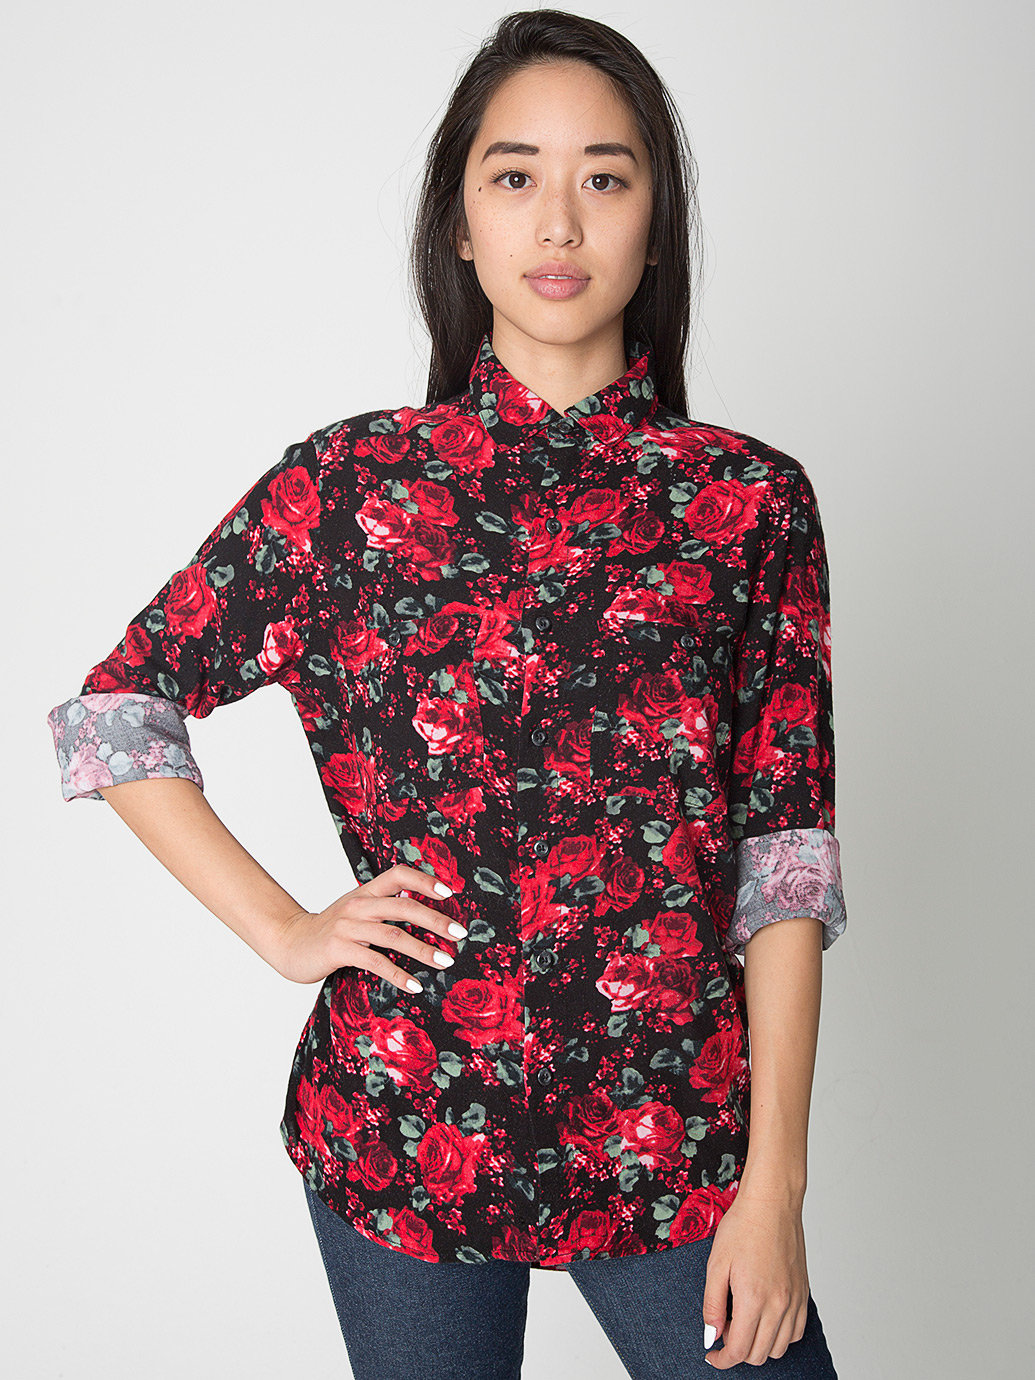 Unisex printed rayon long sleeve button